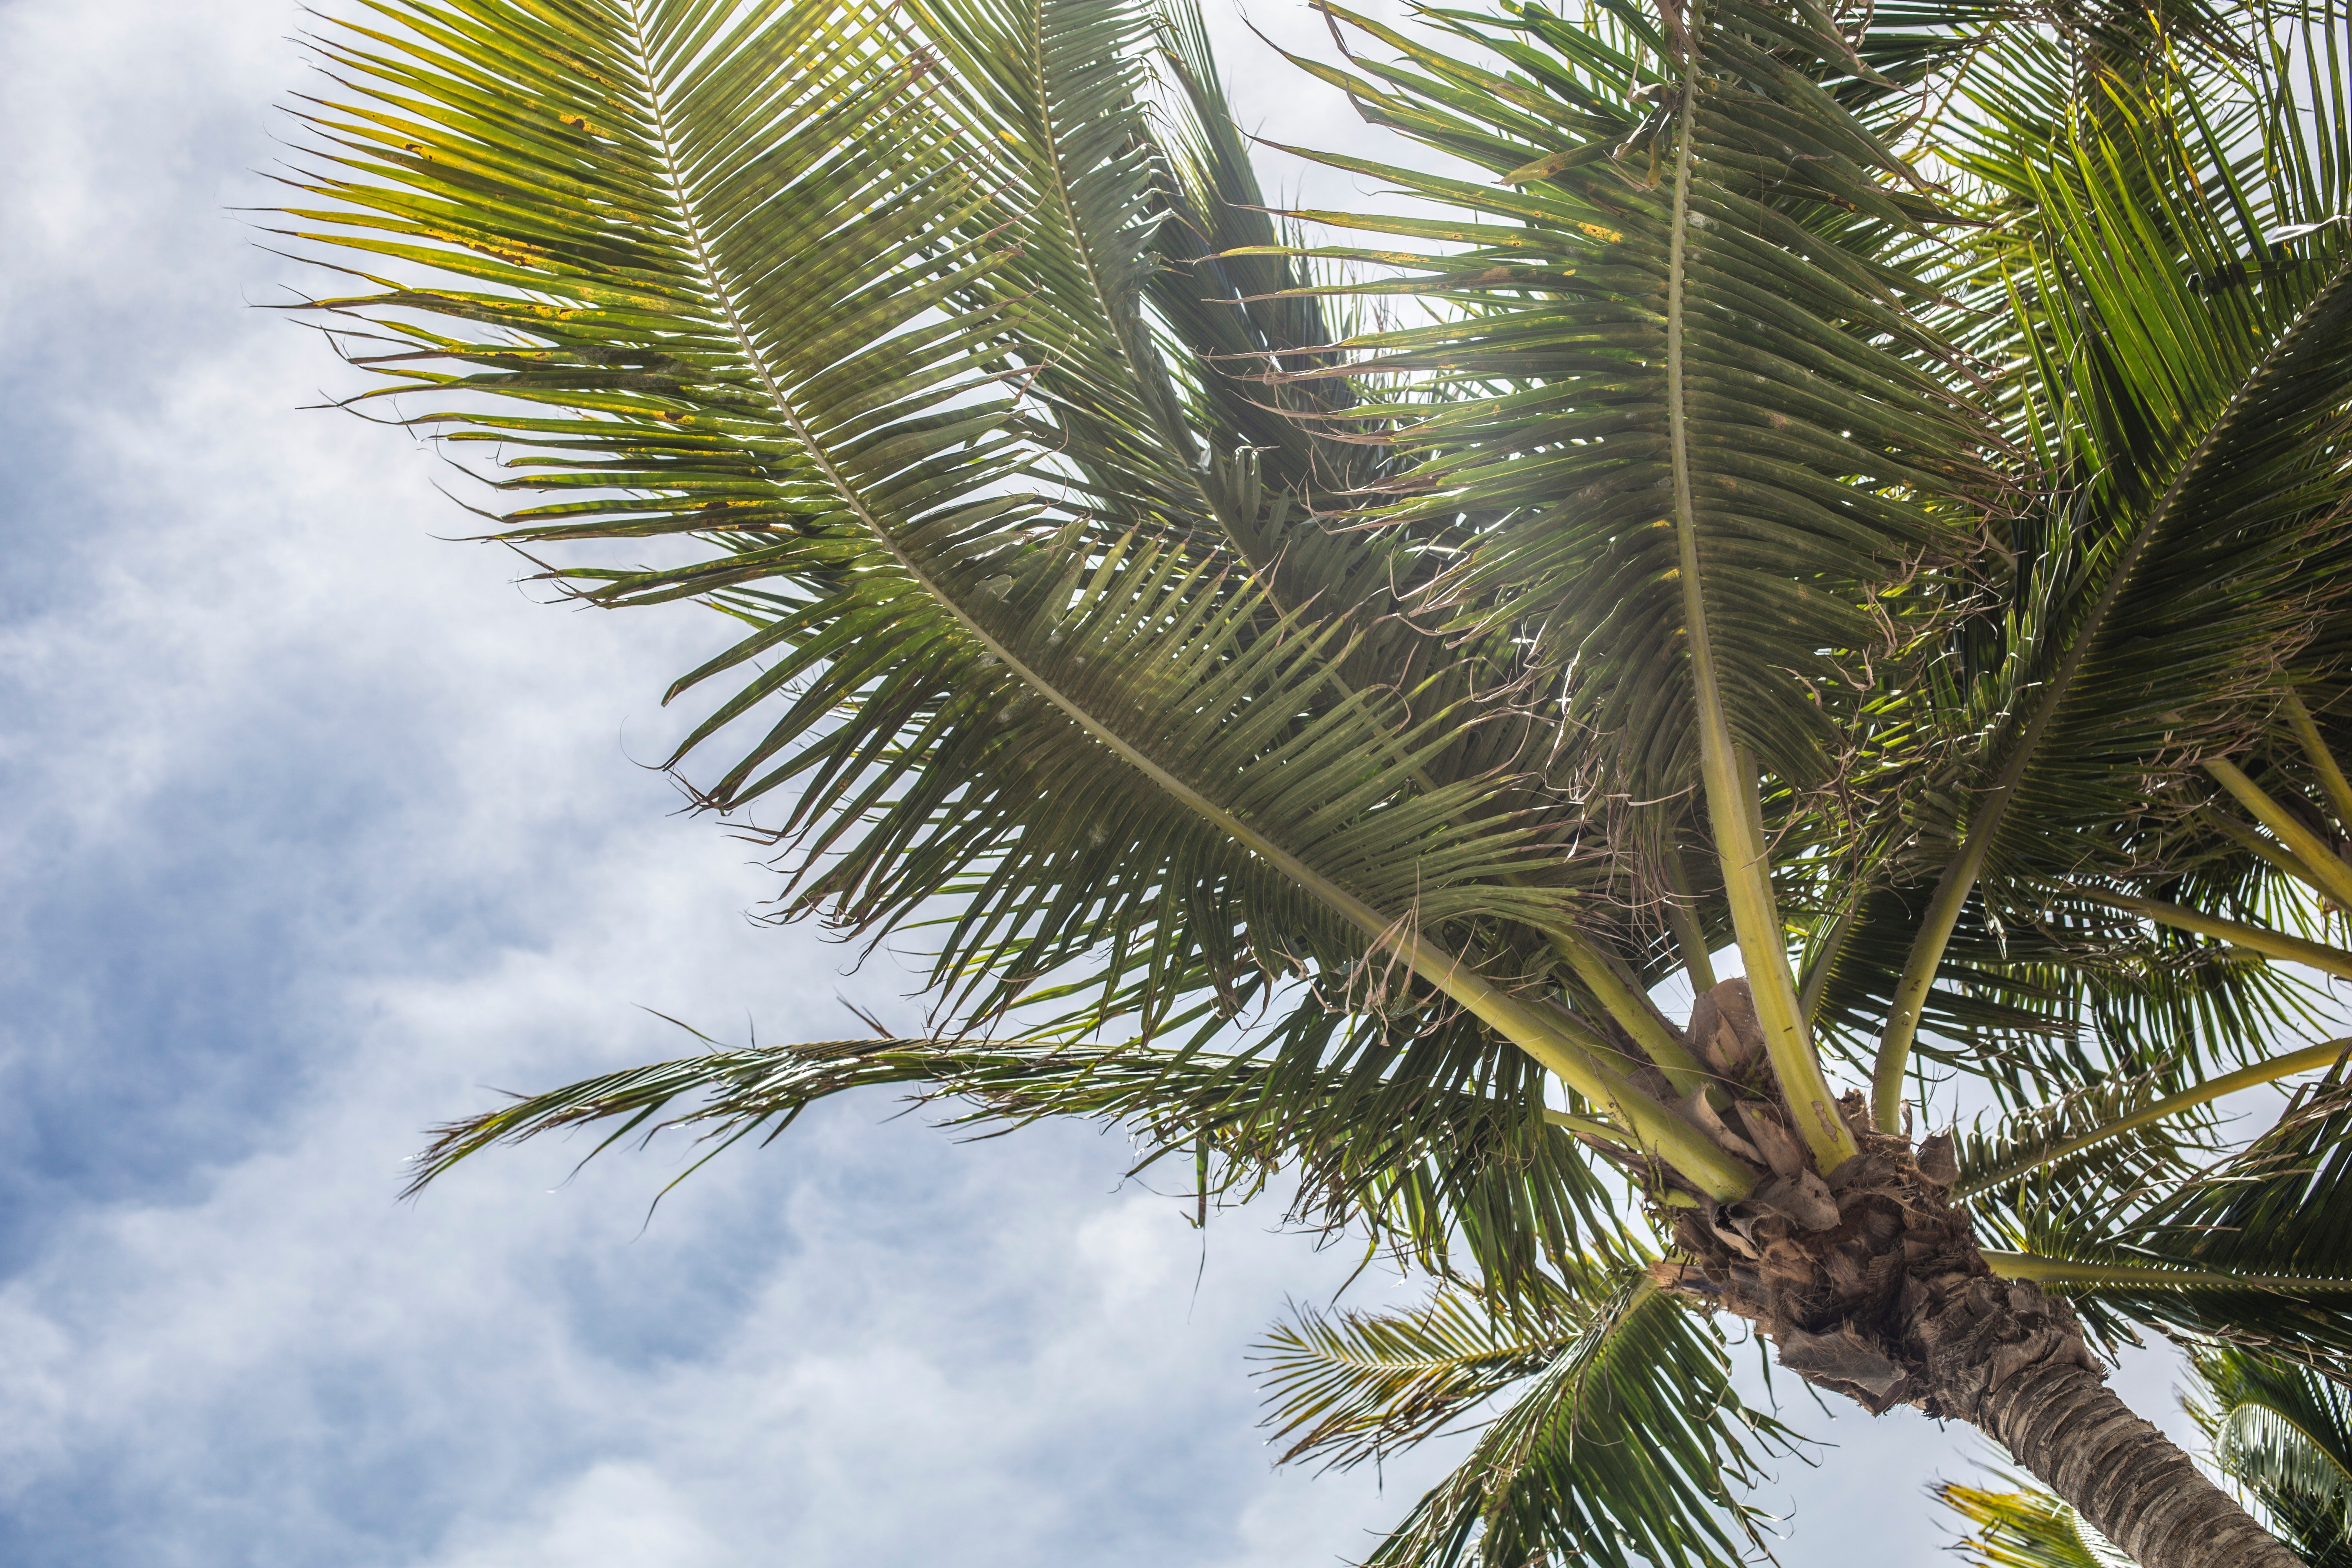 Coconut tree with cloudy skies above.